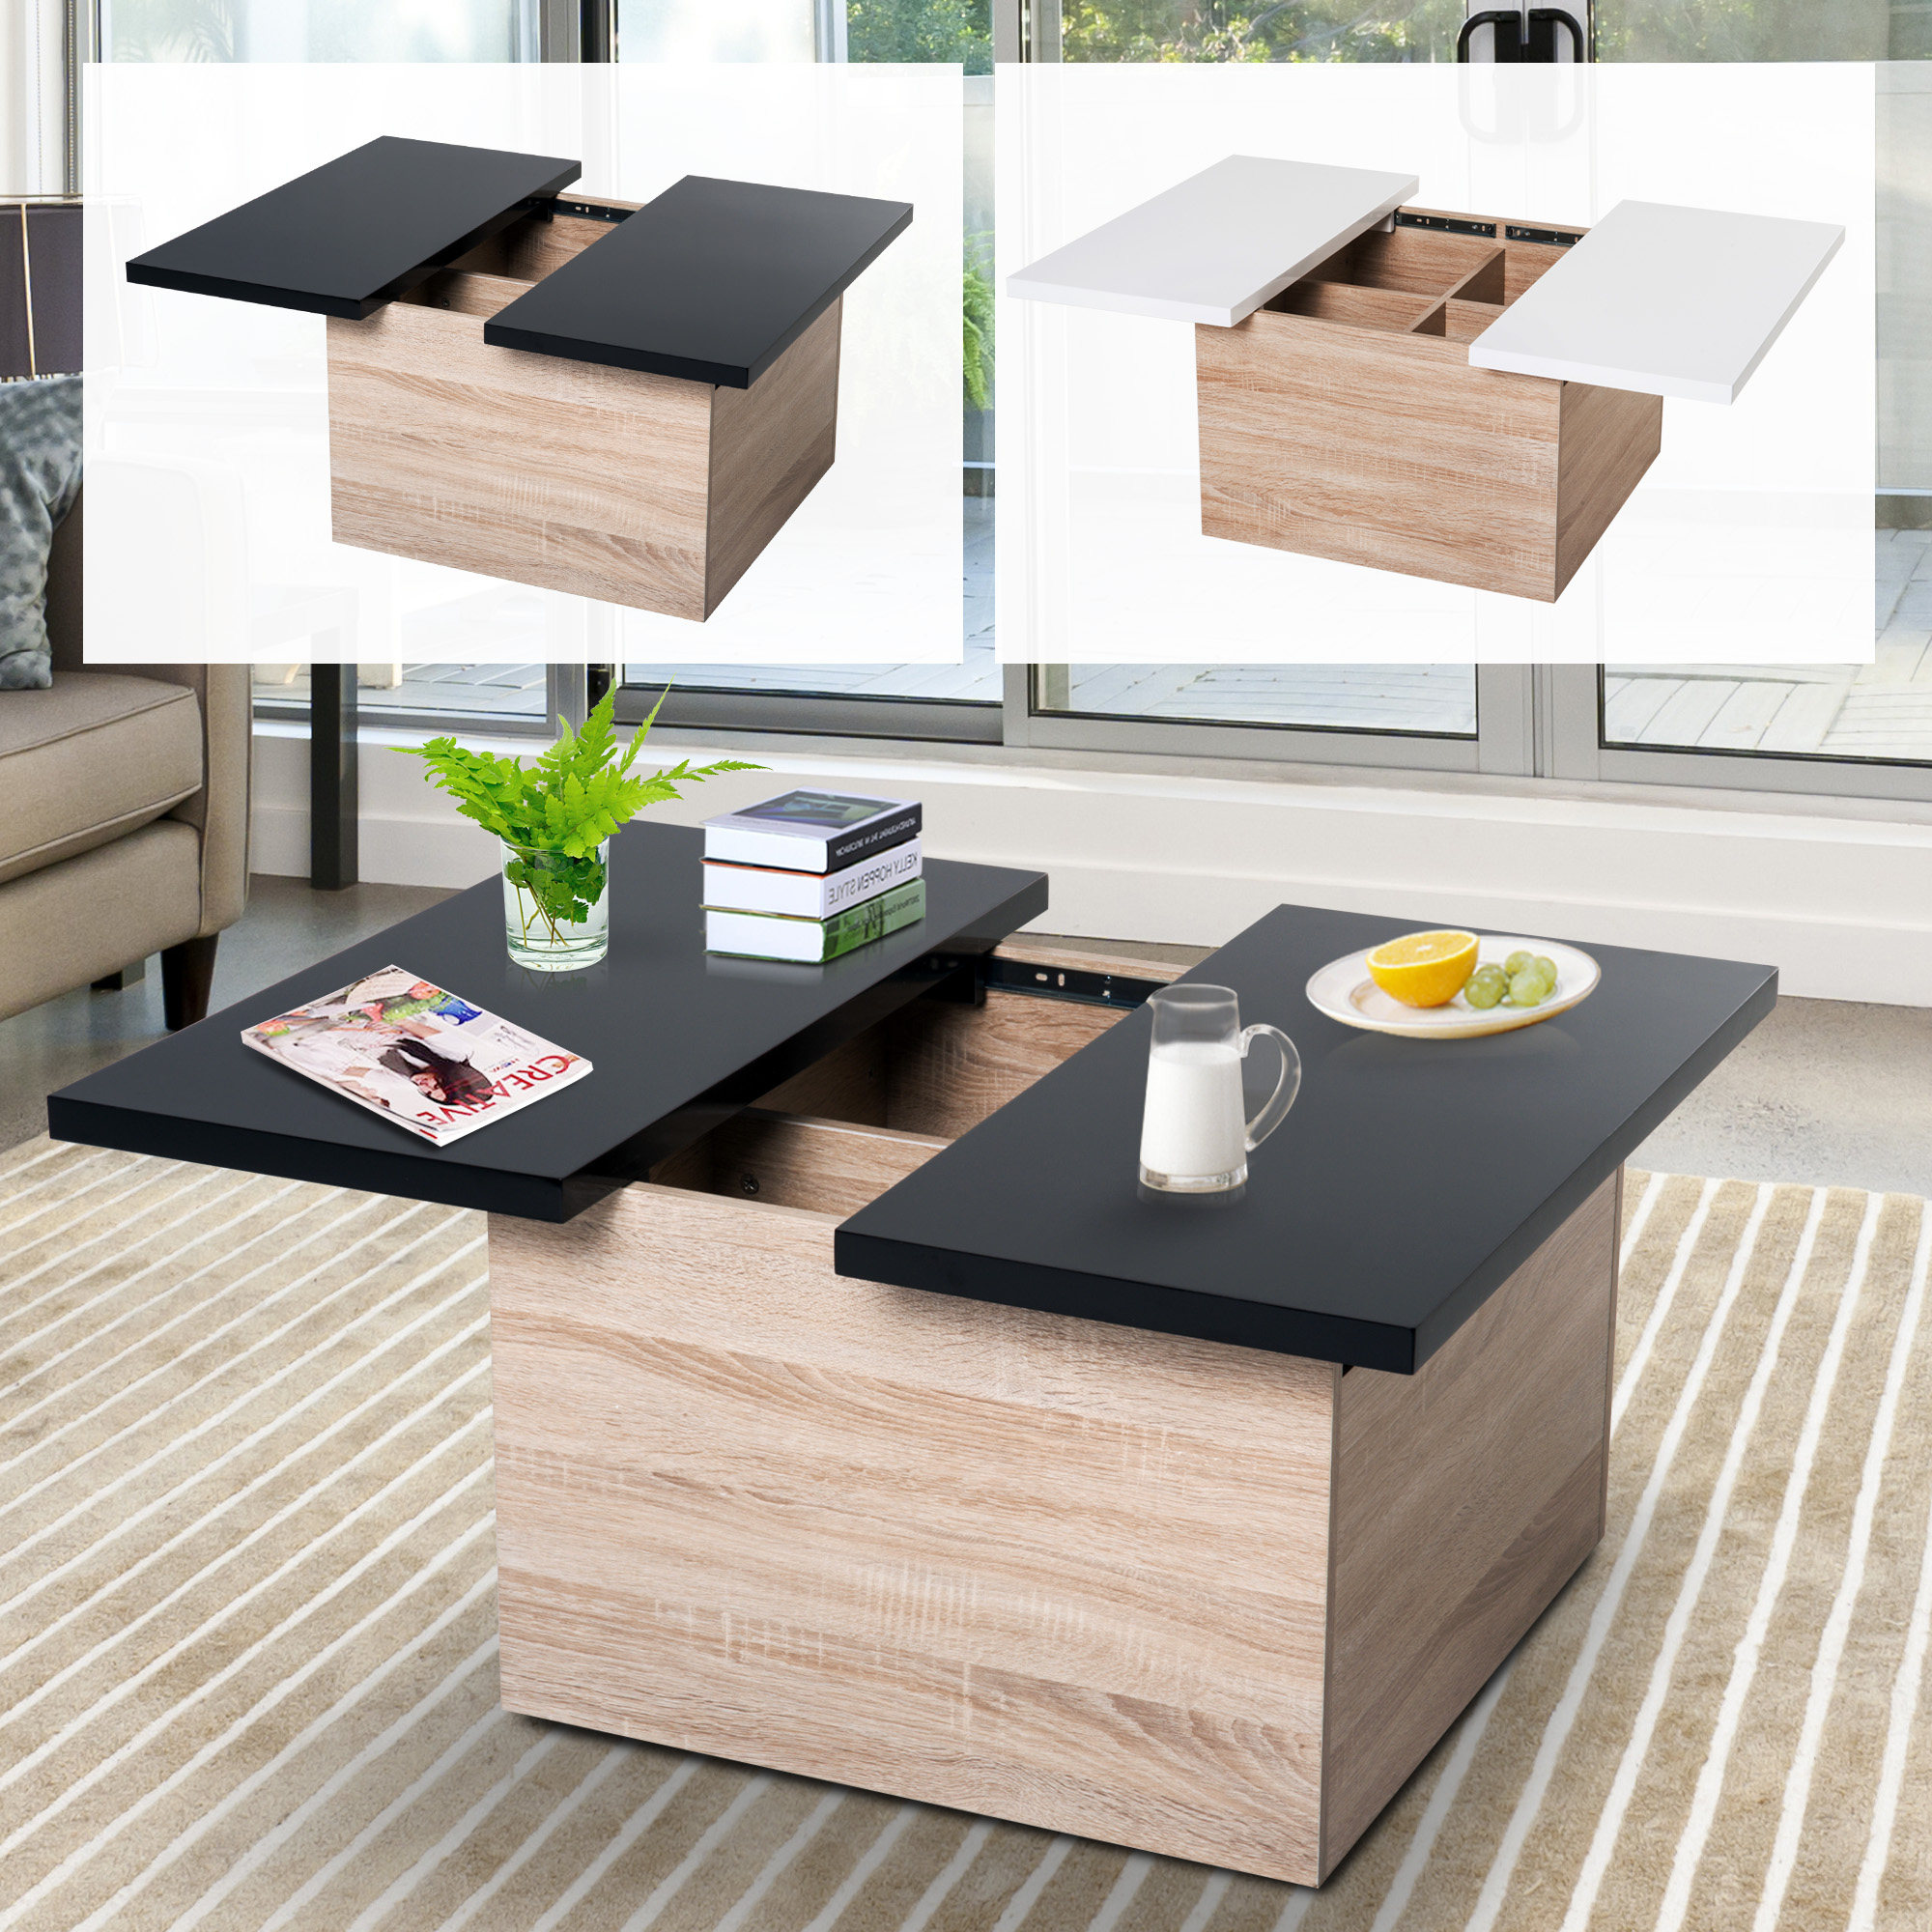 Modern Coffee Table With Storage Details About Modern Storage Coffee Table With Sliding Top Mdf Chipboard Living Room